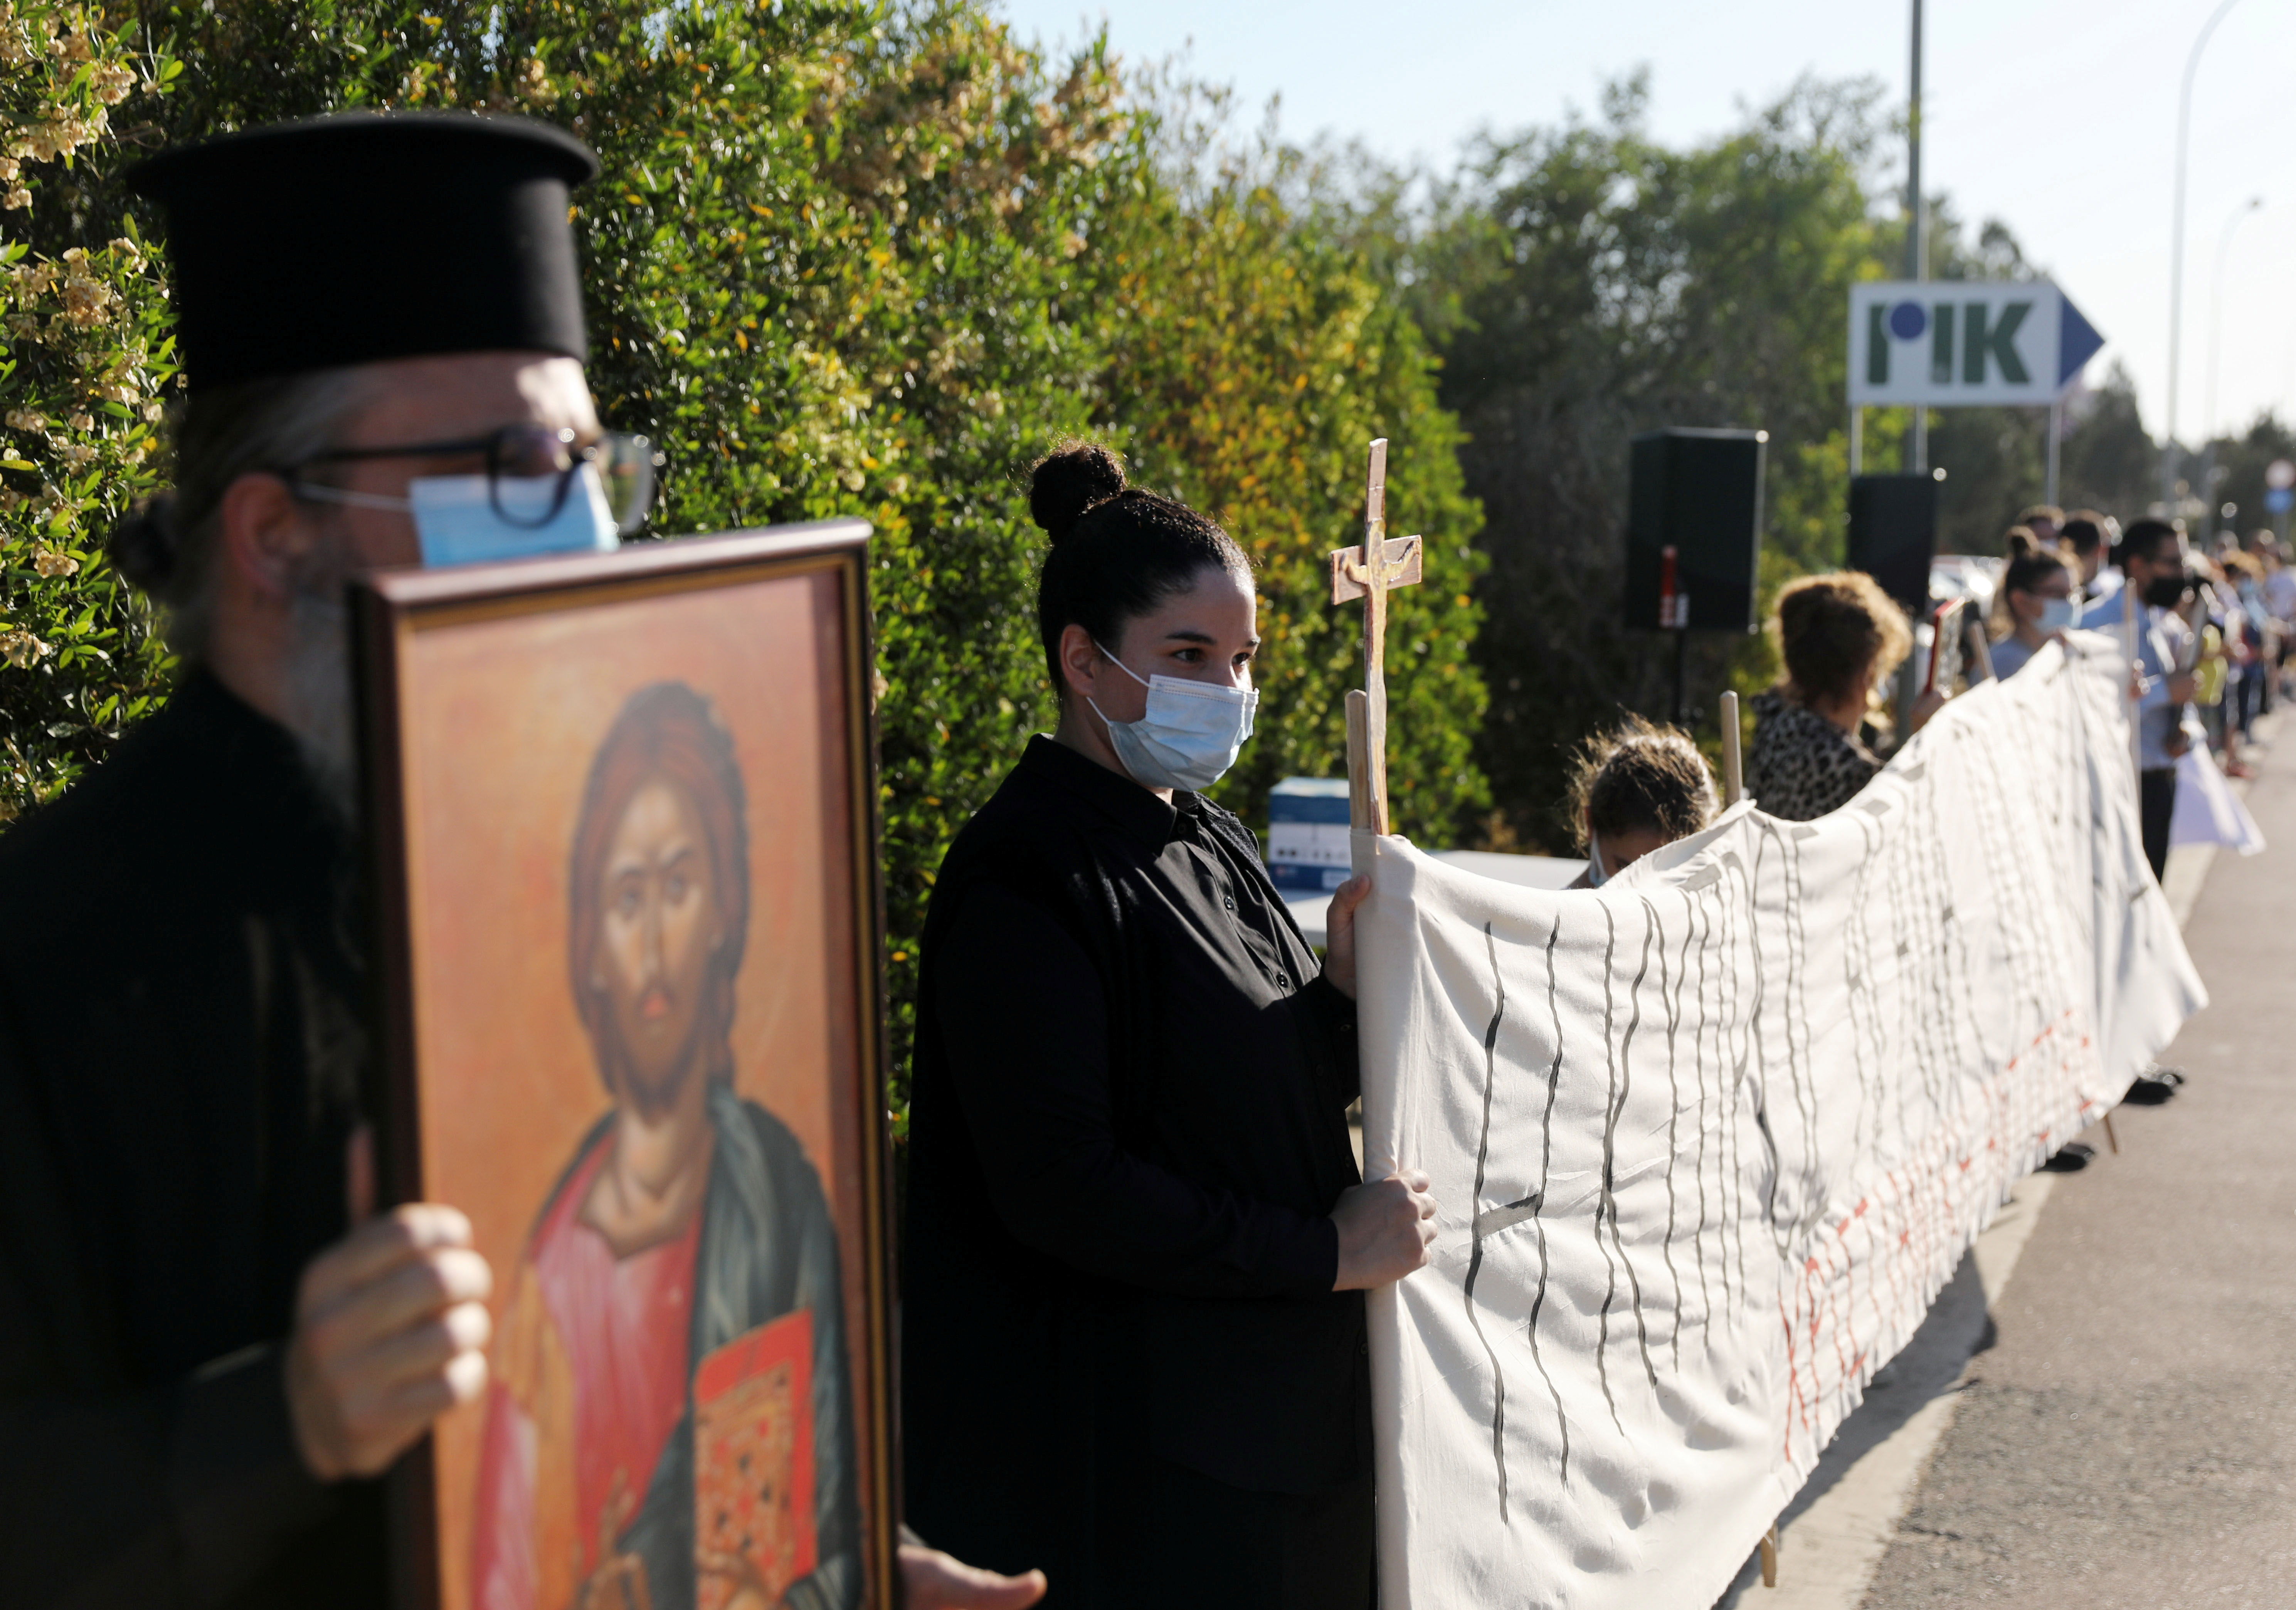 """People hold icons and bunner during a protest against the song """"El Diablo"""", Cyprus pick to represent the island  at the annual Eurovision Song Contest outside the offices of the Cyprus Broadcasting Corporation in Nicosia, Cyprus May 19, 2021. REUTERS/Yiannis Kourtoglou"""